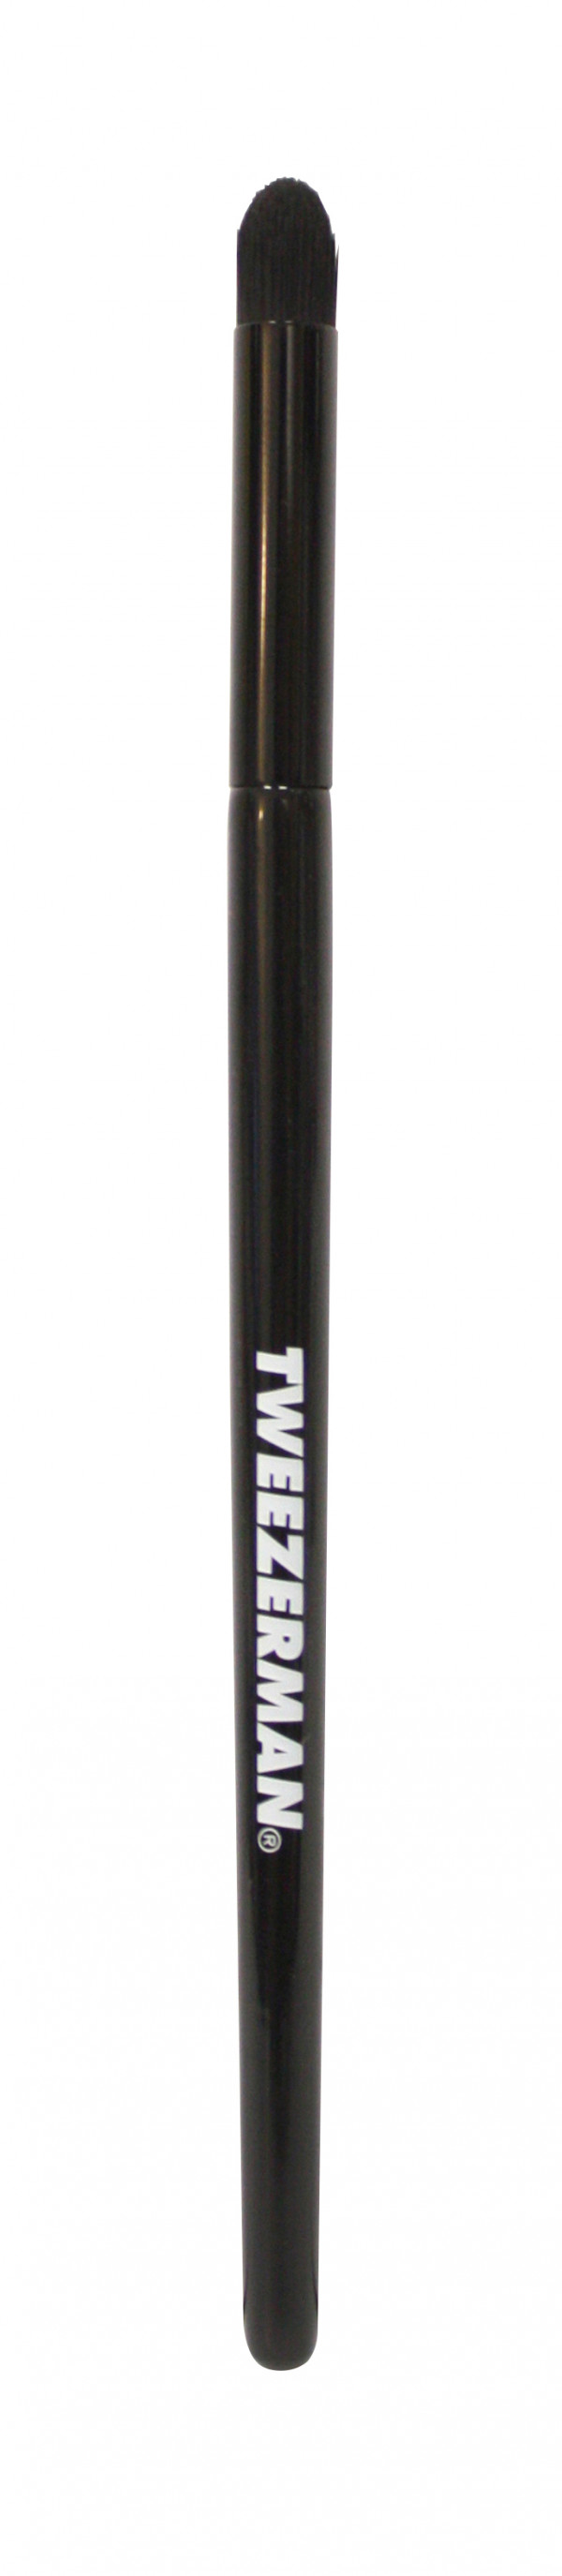 Tweezerman Pointed Concealer Brush